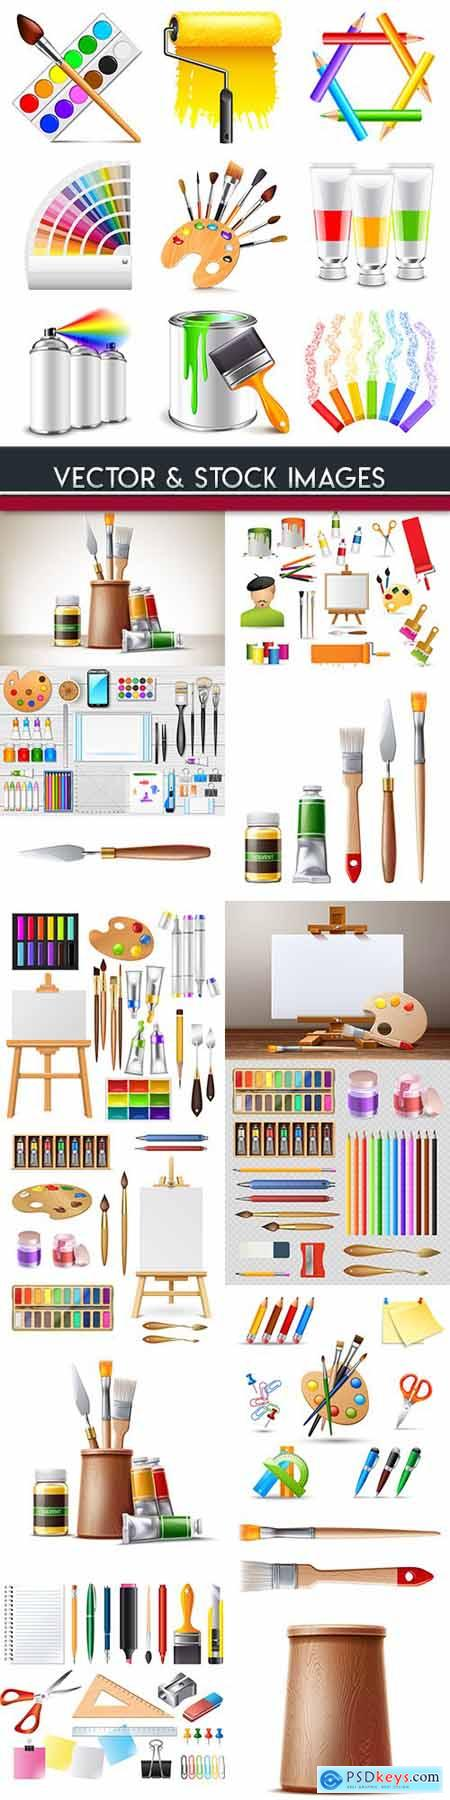 Paints and brushes for drawing young artist